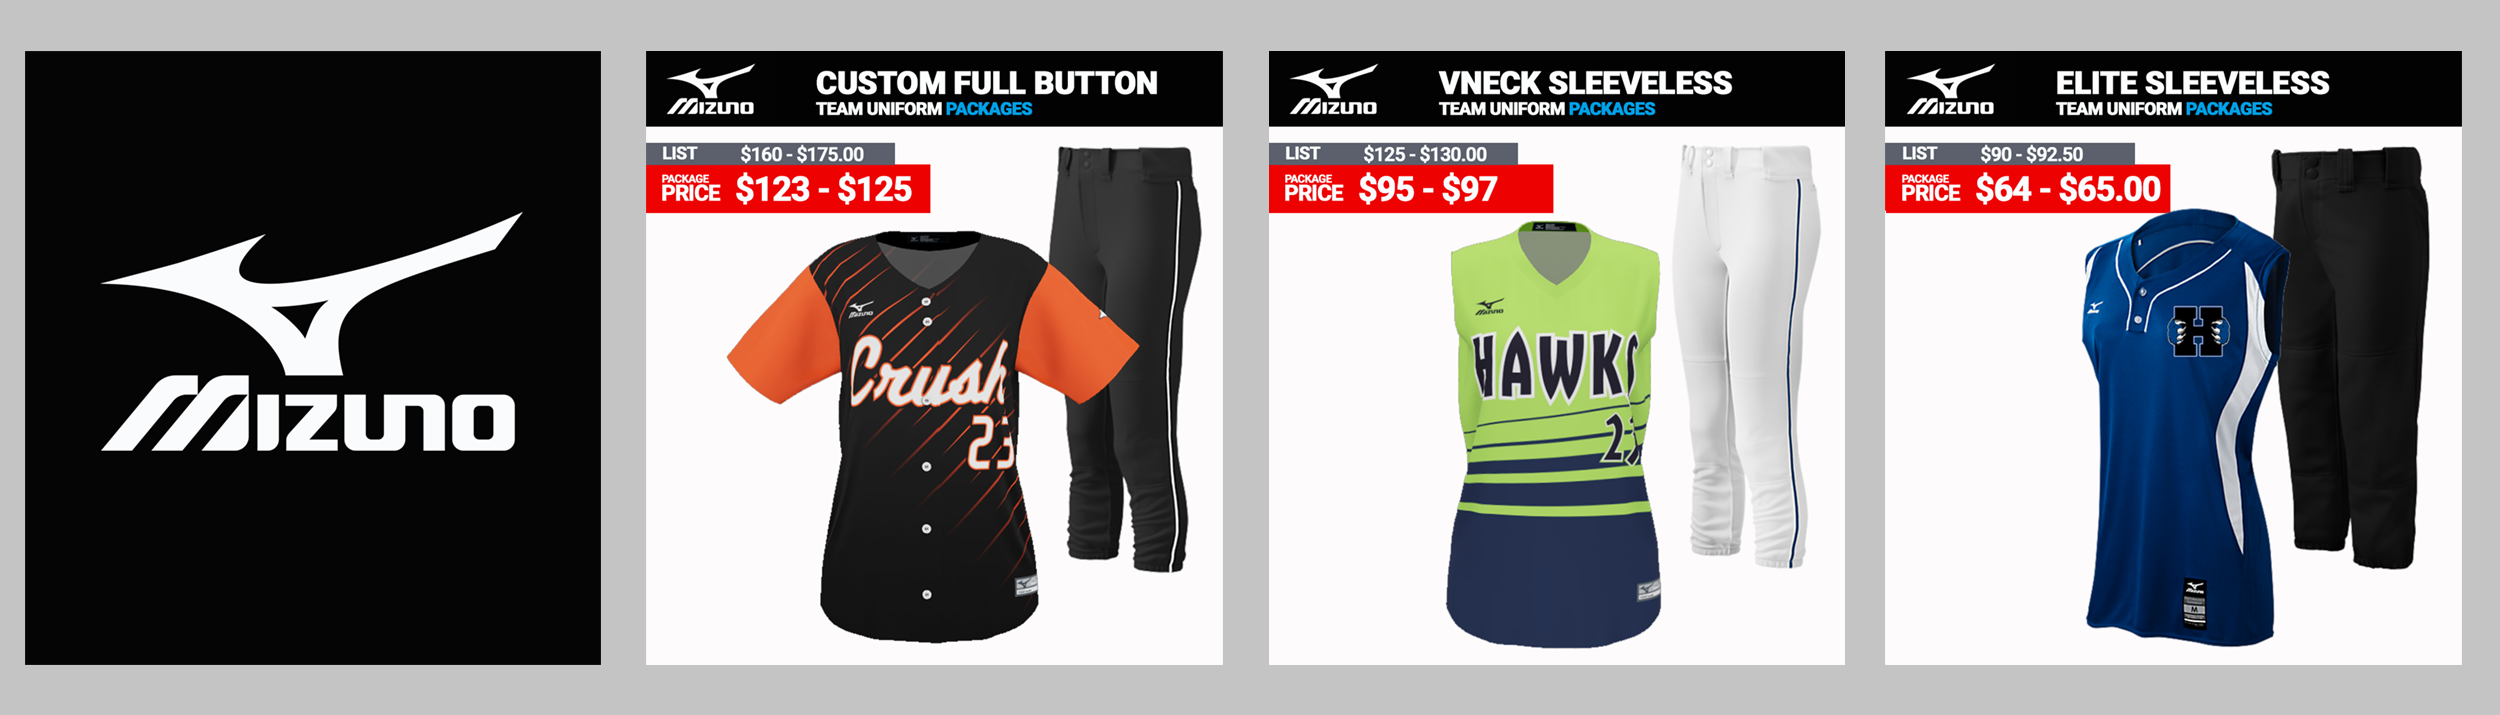 Mizuno Sublimated Softball Team Uniforms